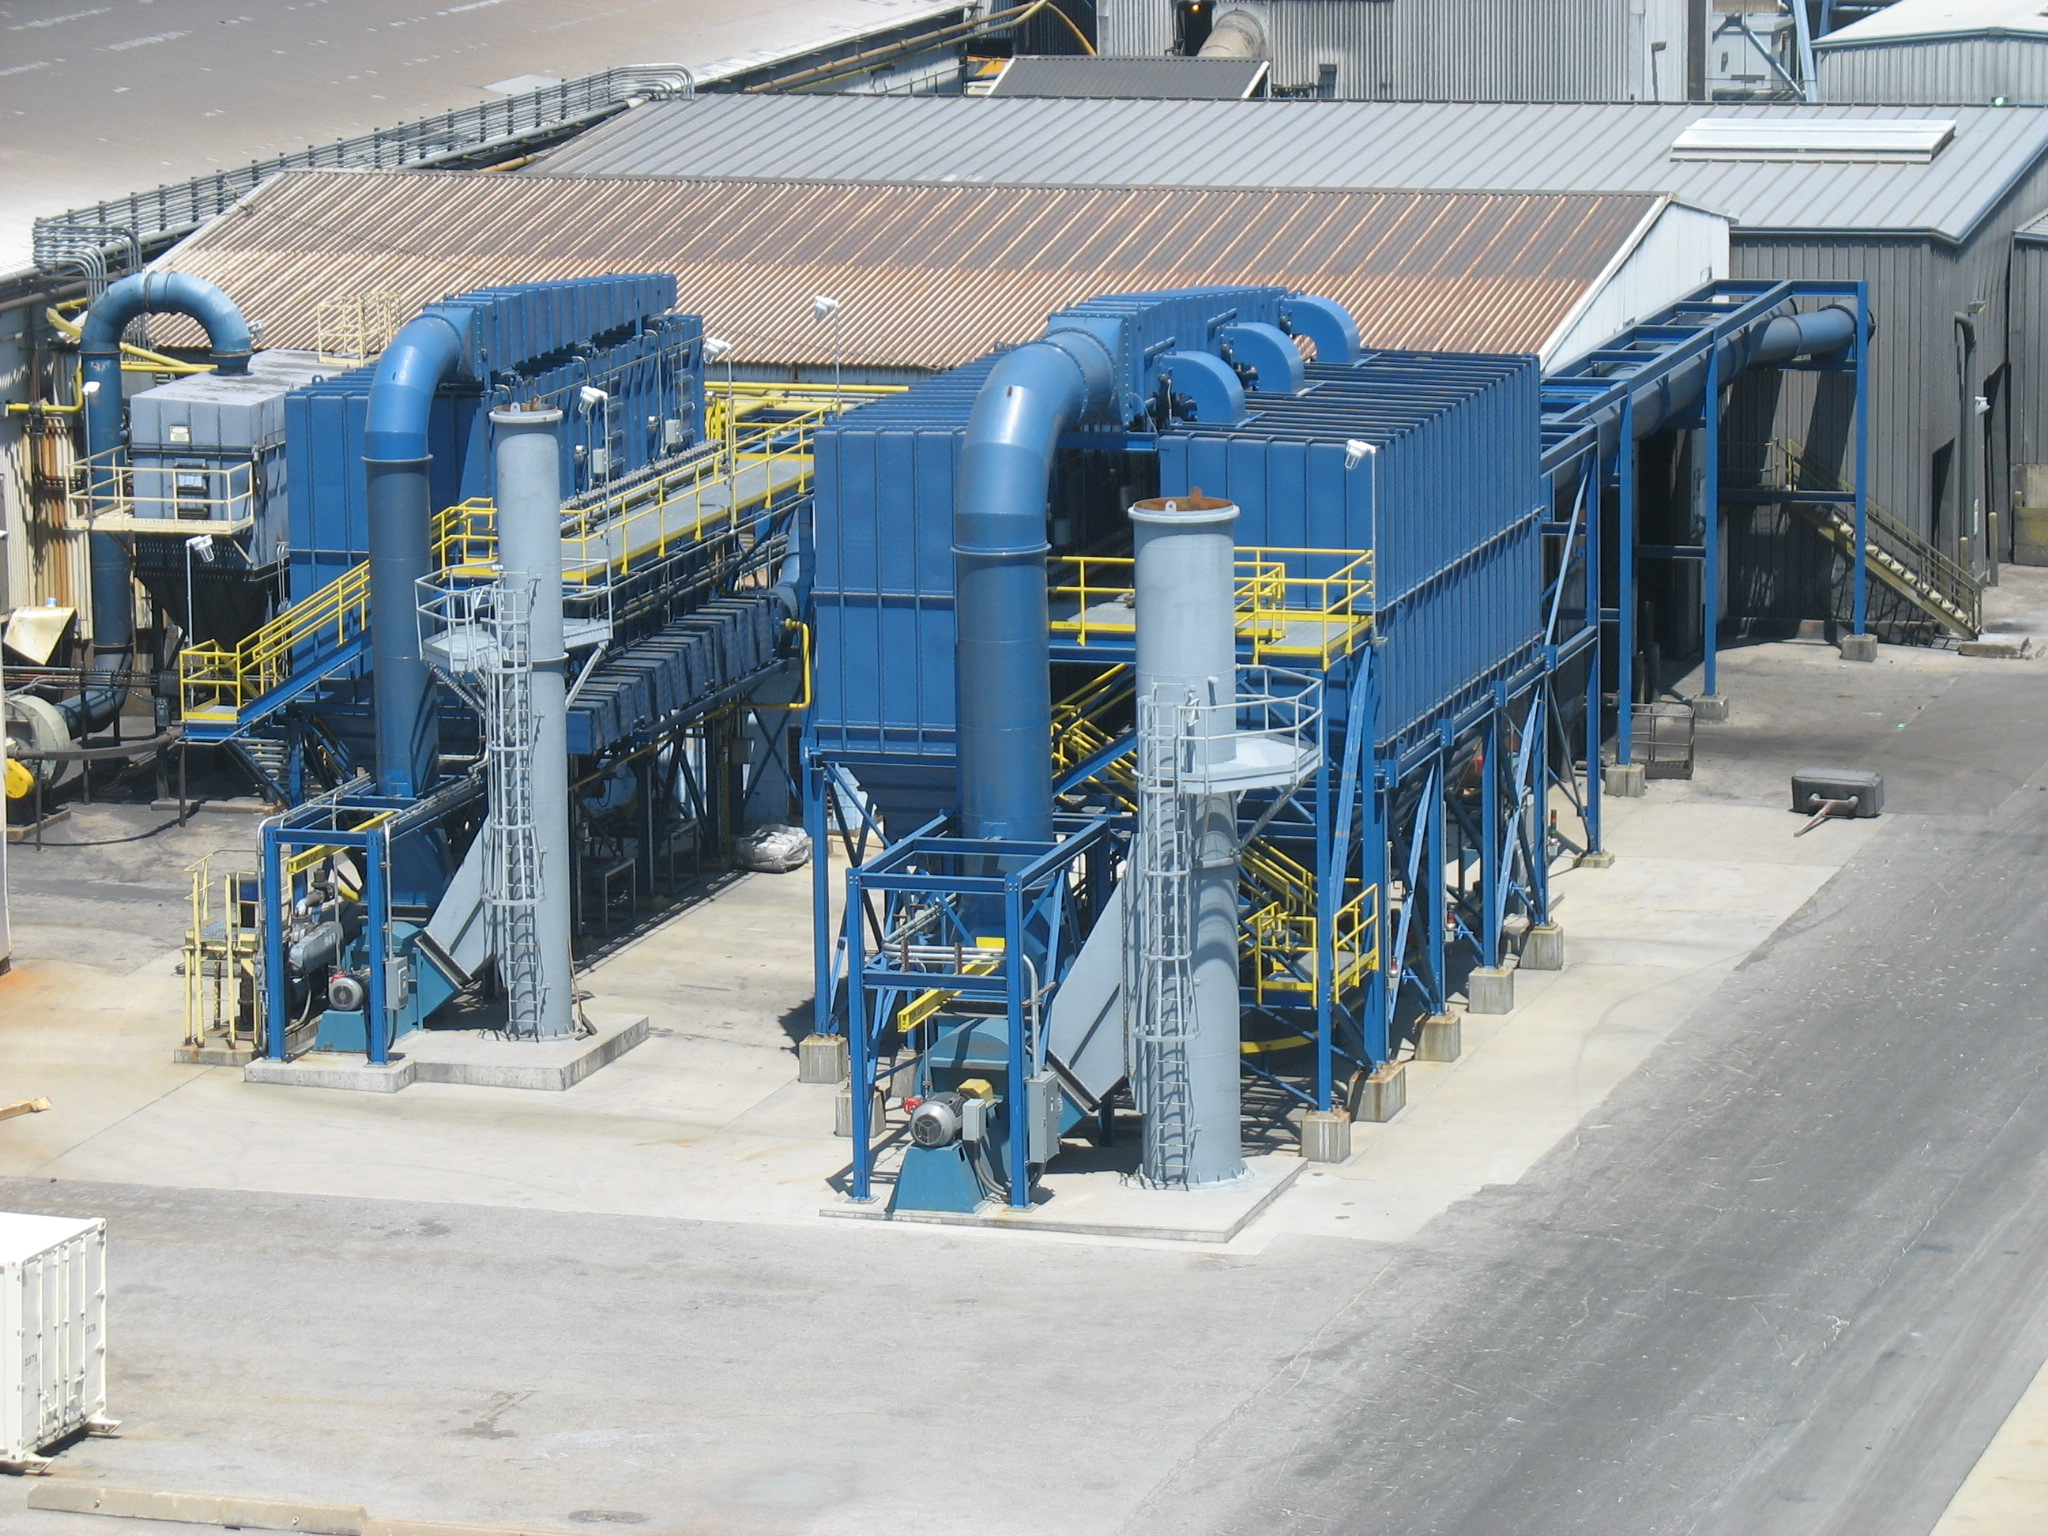 commercial, industrial plant equipment